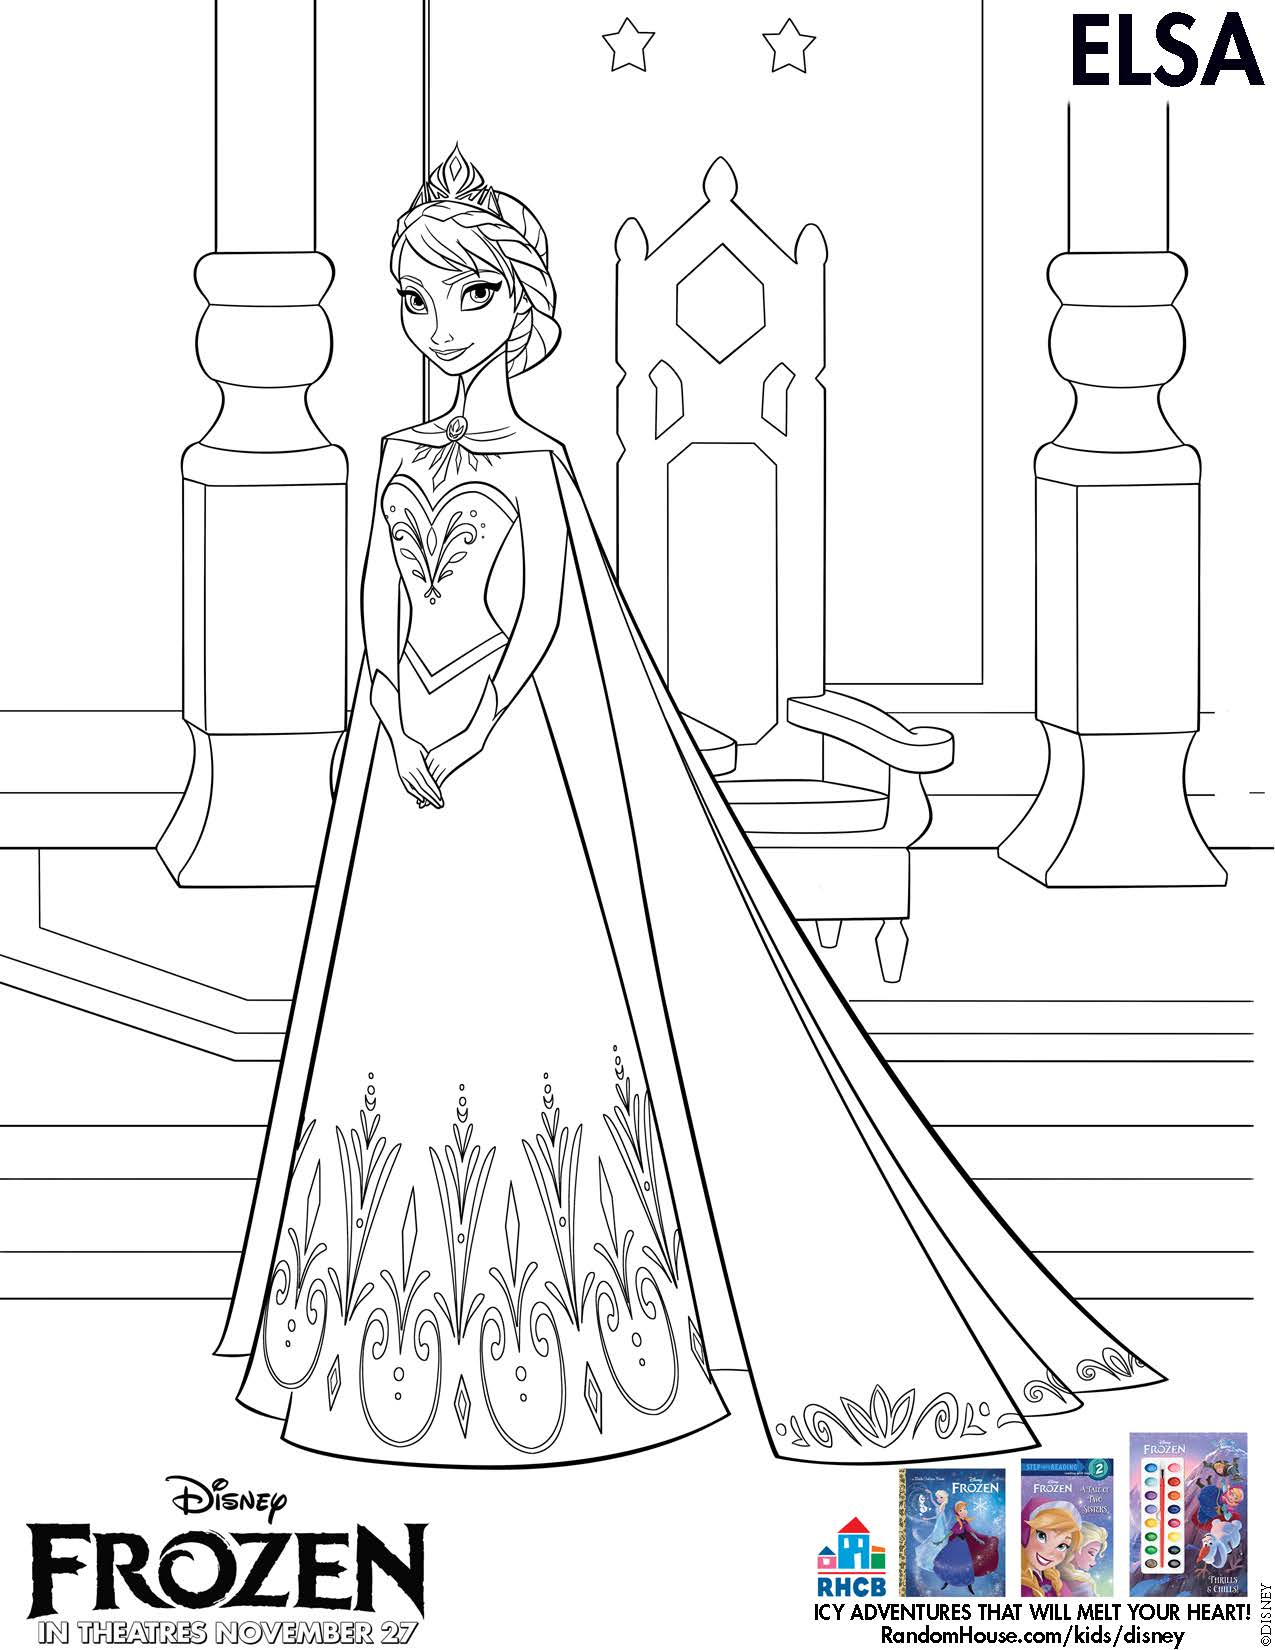 Frozen (Movie) coloring #4, Download drawings